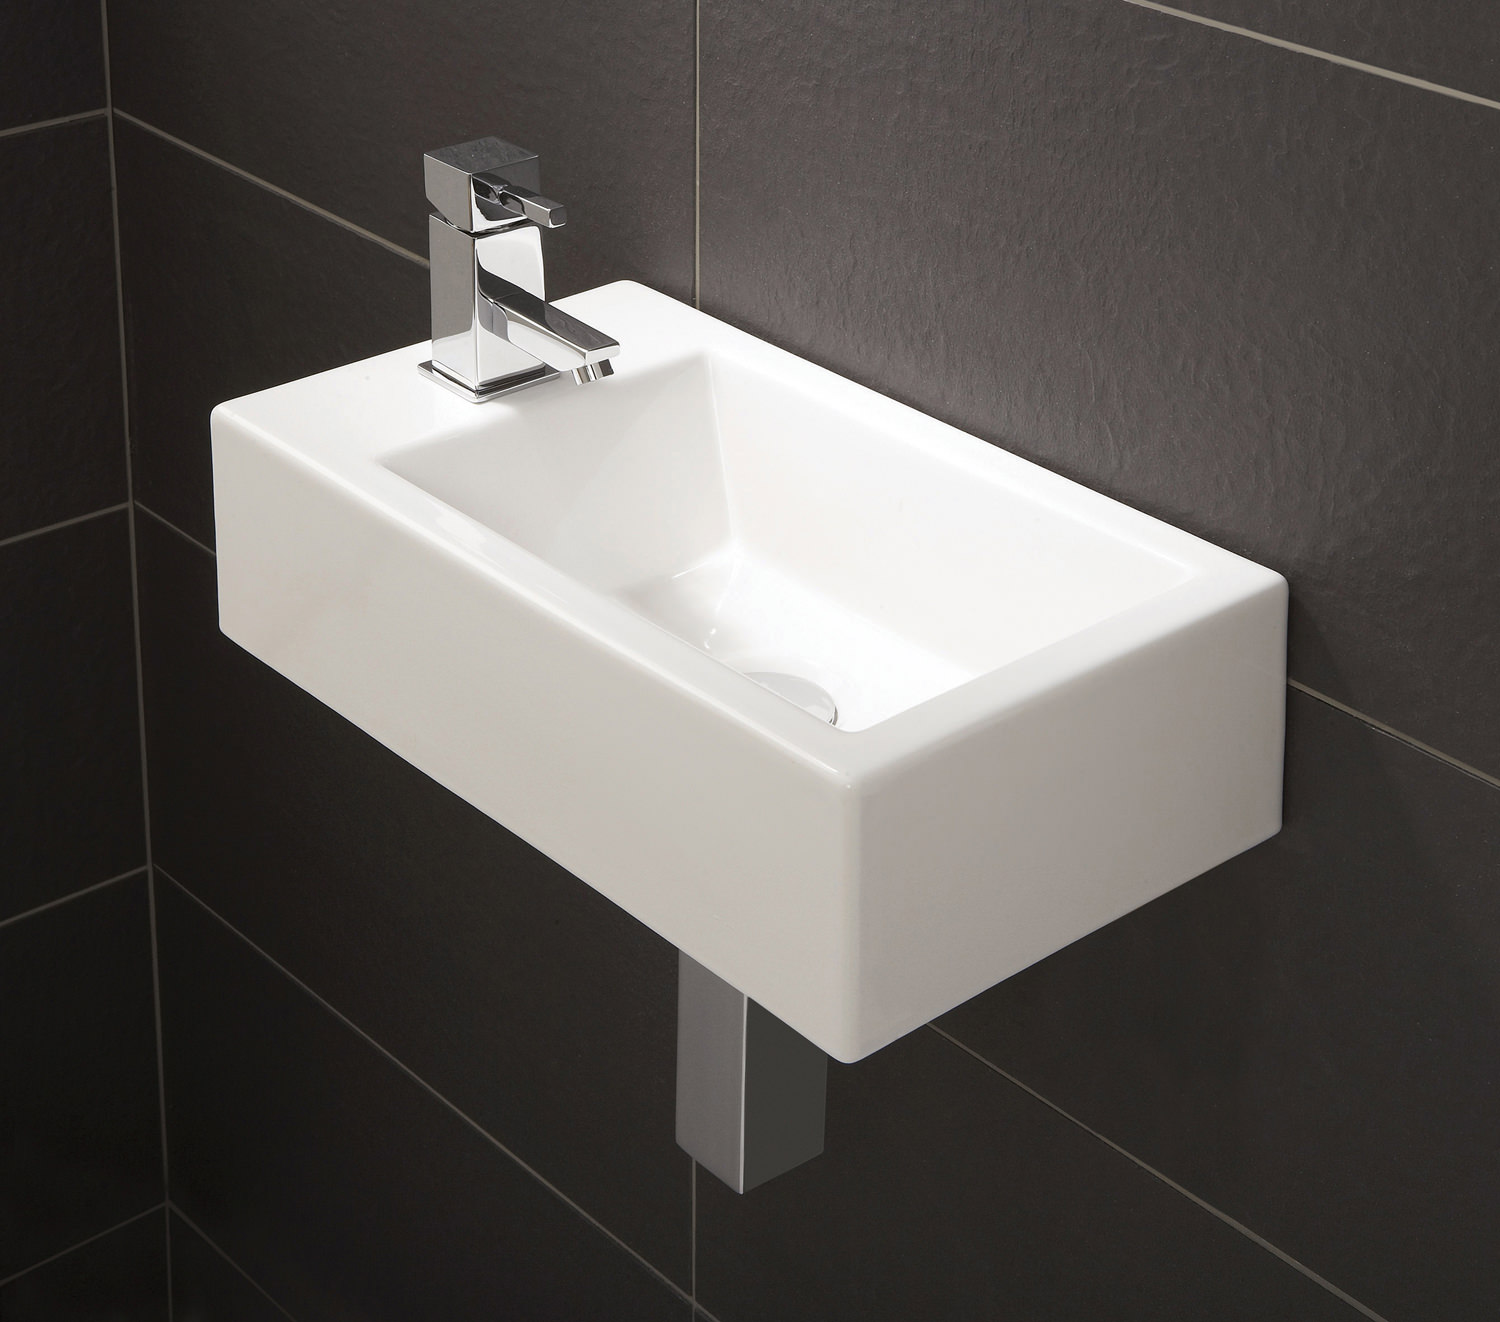 Powder Room Design Hib Rialto Metro Cloakroom Basin 440 X 250mm 9770